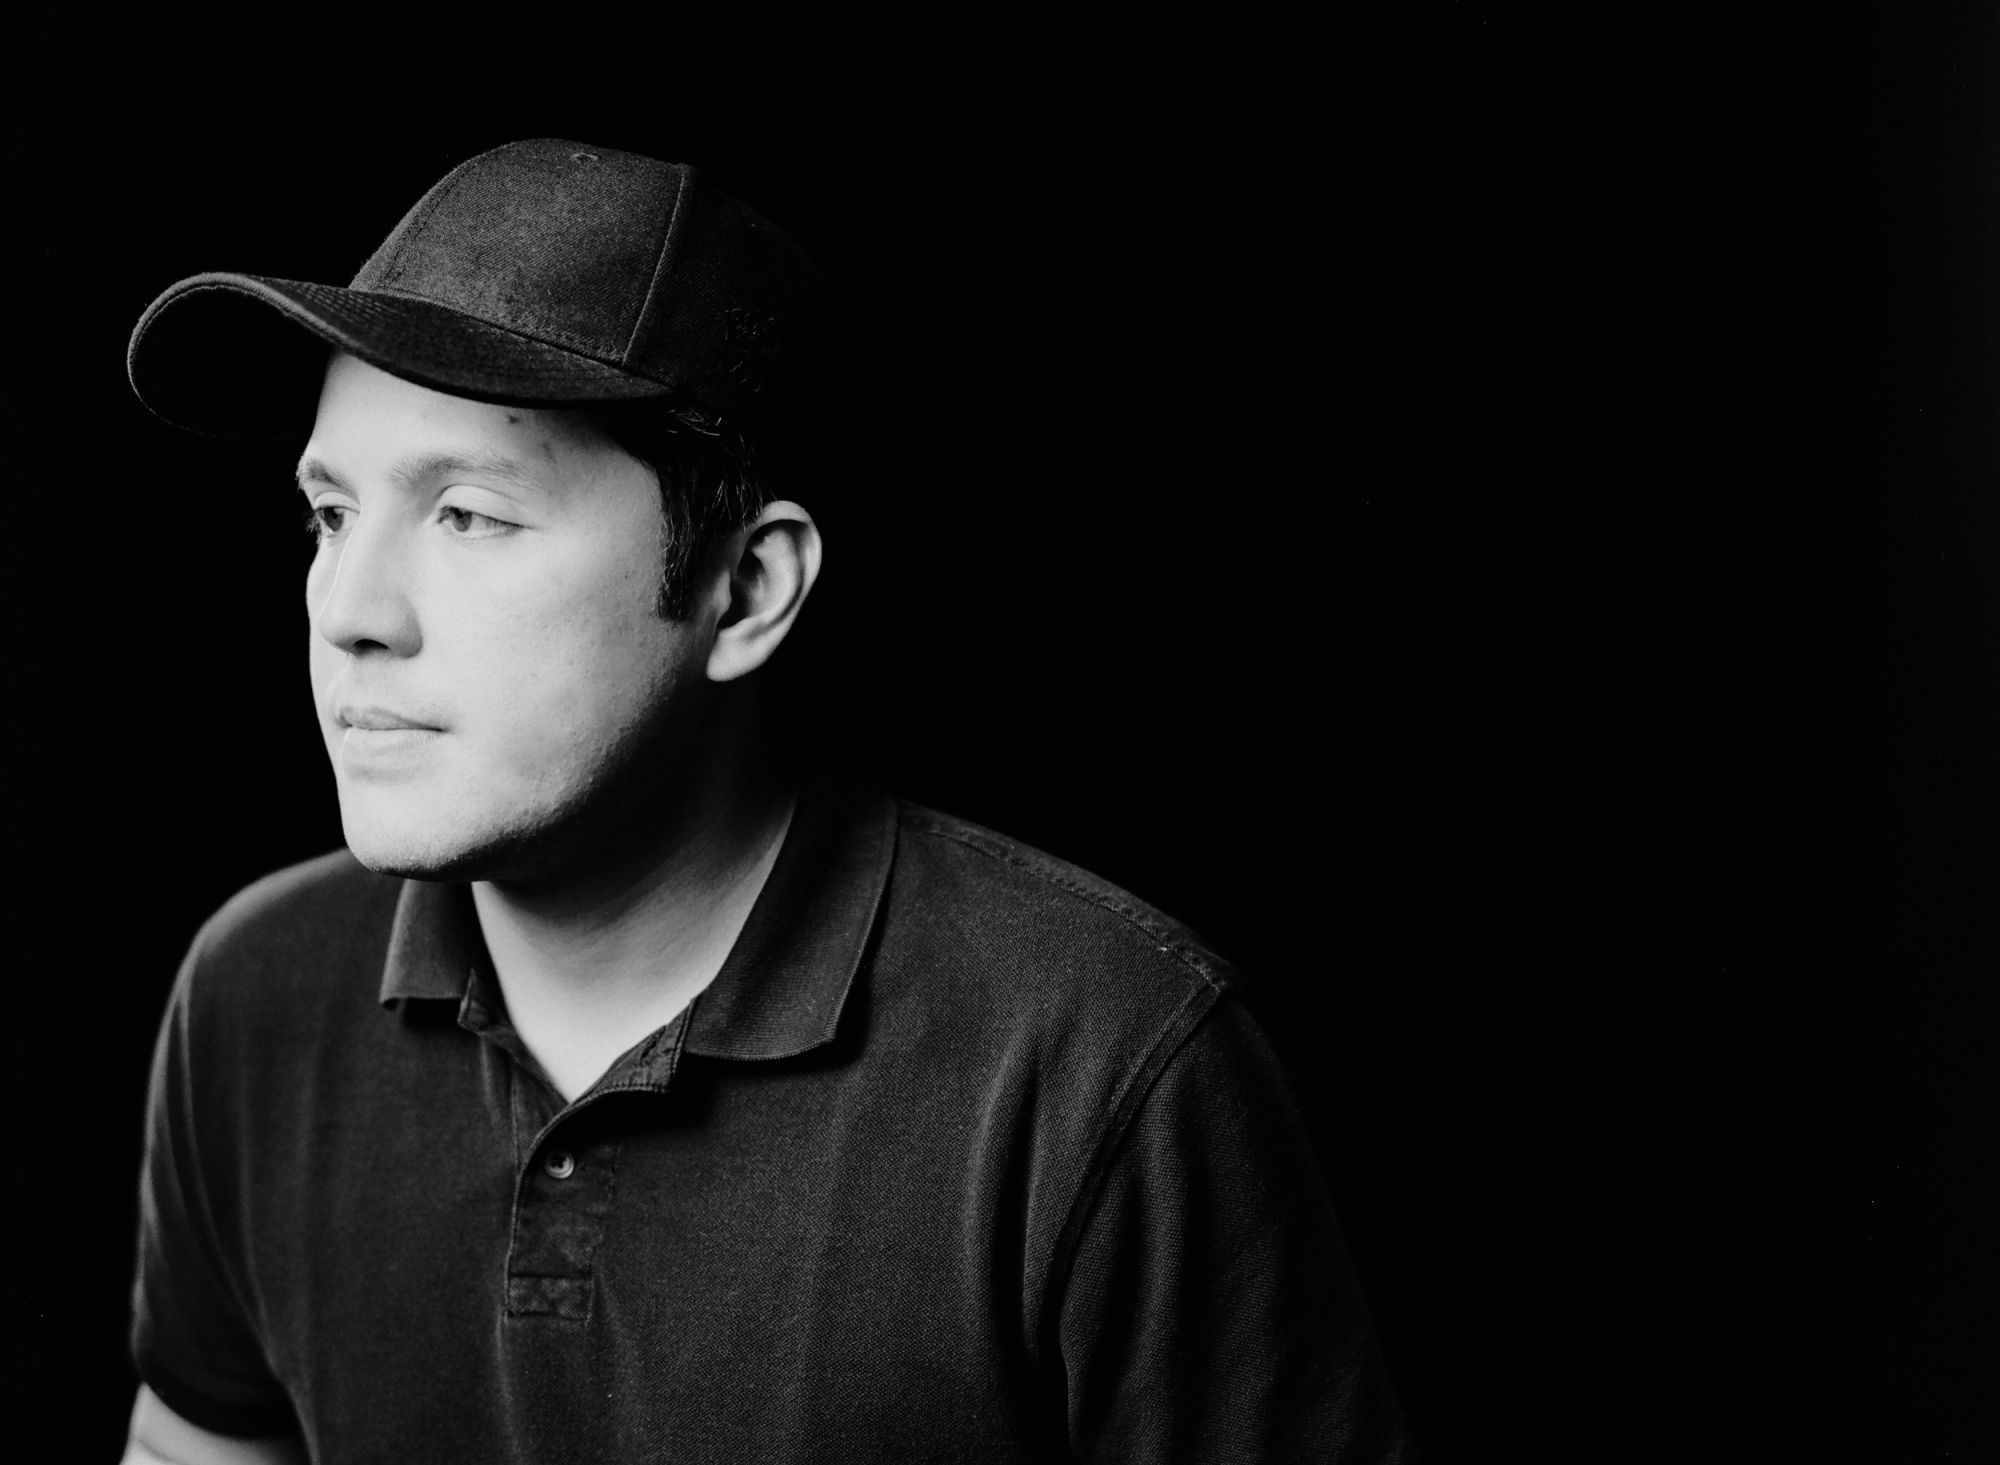 Director Paul Soriano Tells Tatler What It's Like To Make Movies During A Pandemic